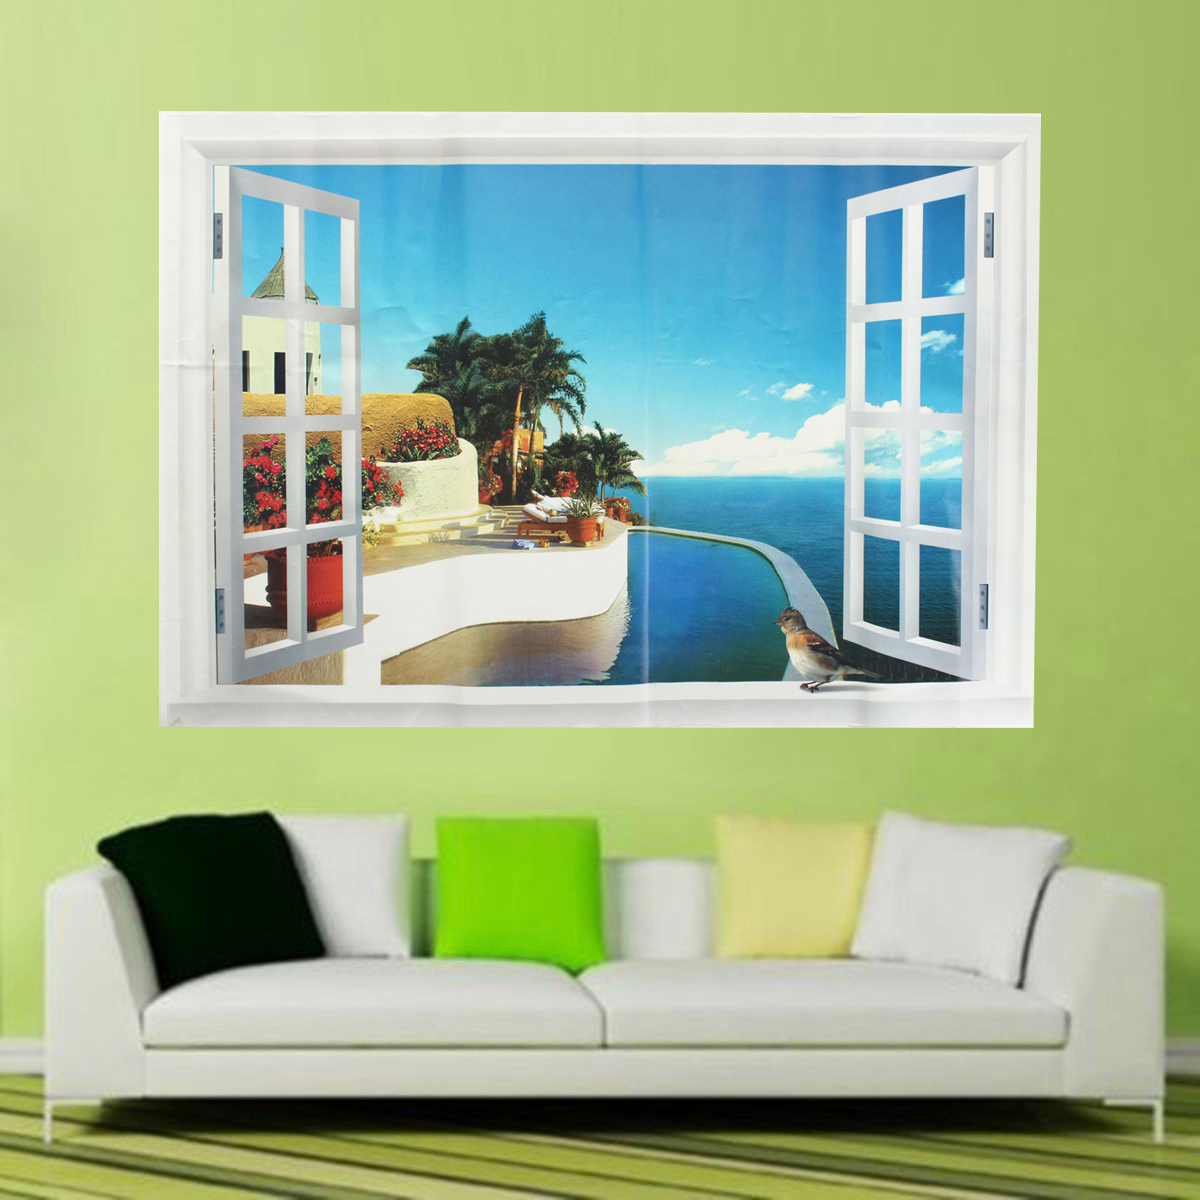 Wholesale 3d window ocean beach wall sticker decals room for Room decor lazada